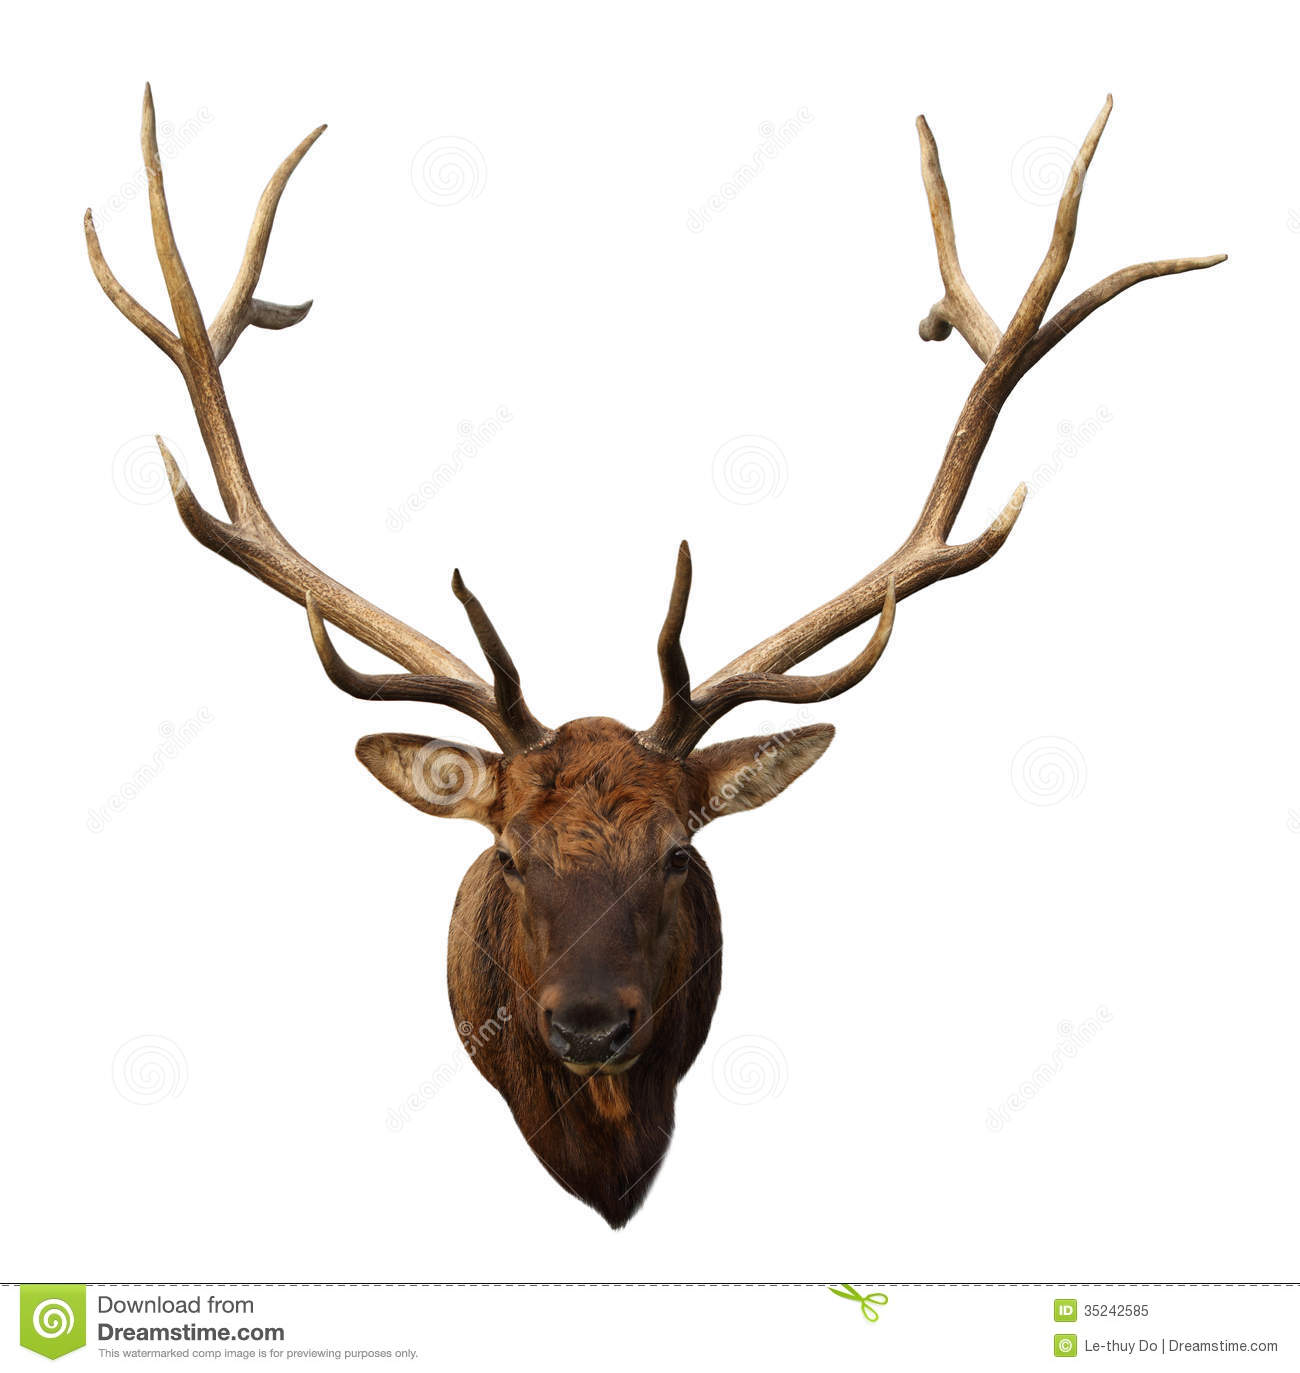 Deer Head with beautiful antlers isolated on white background.